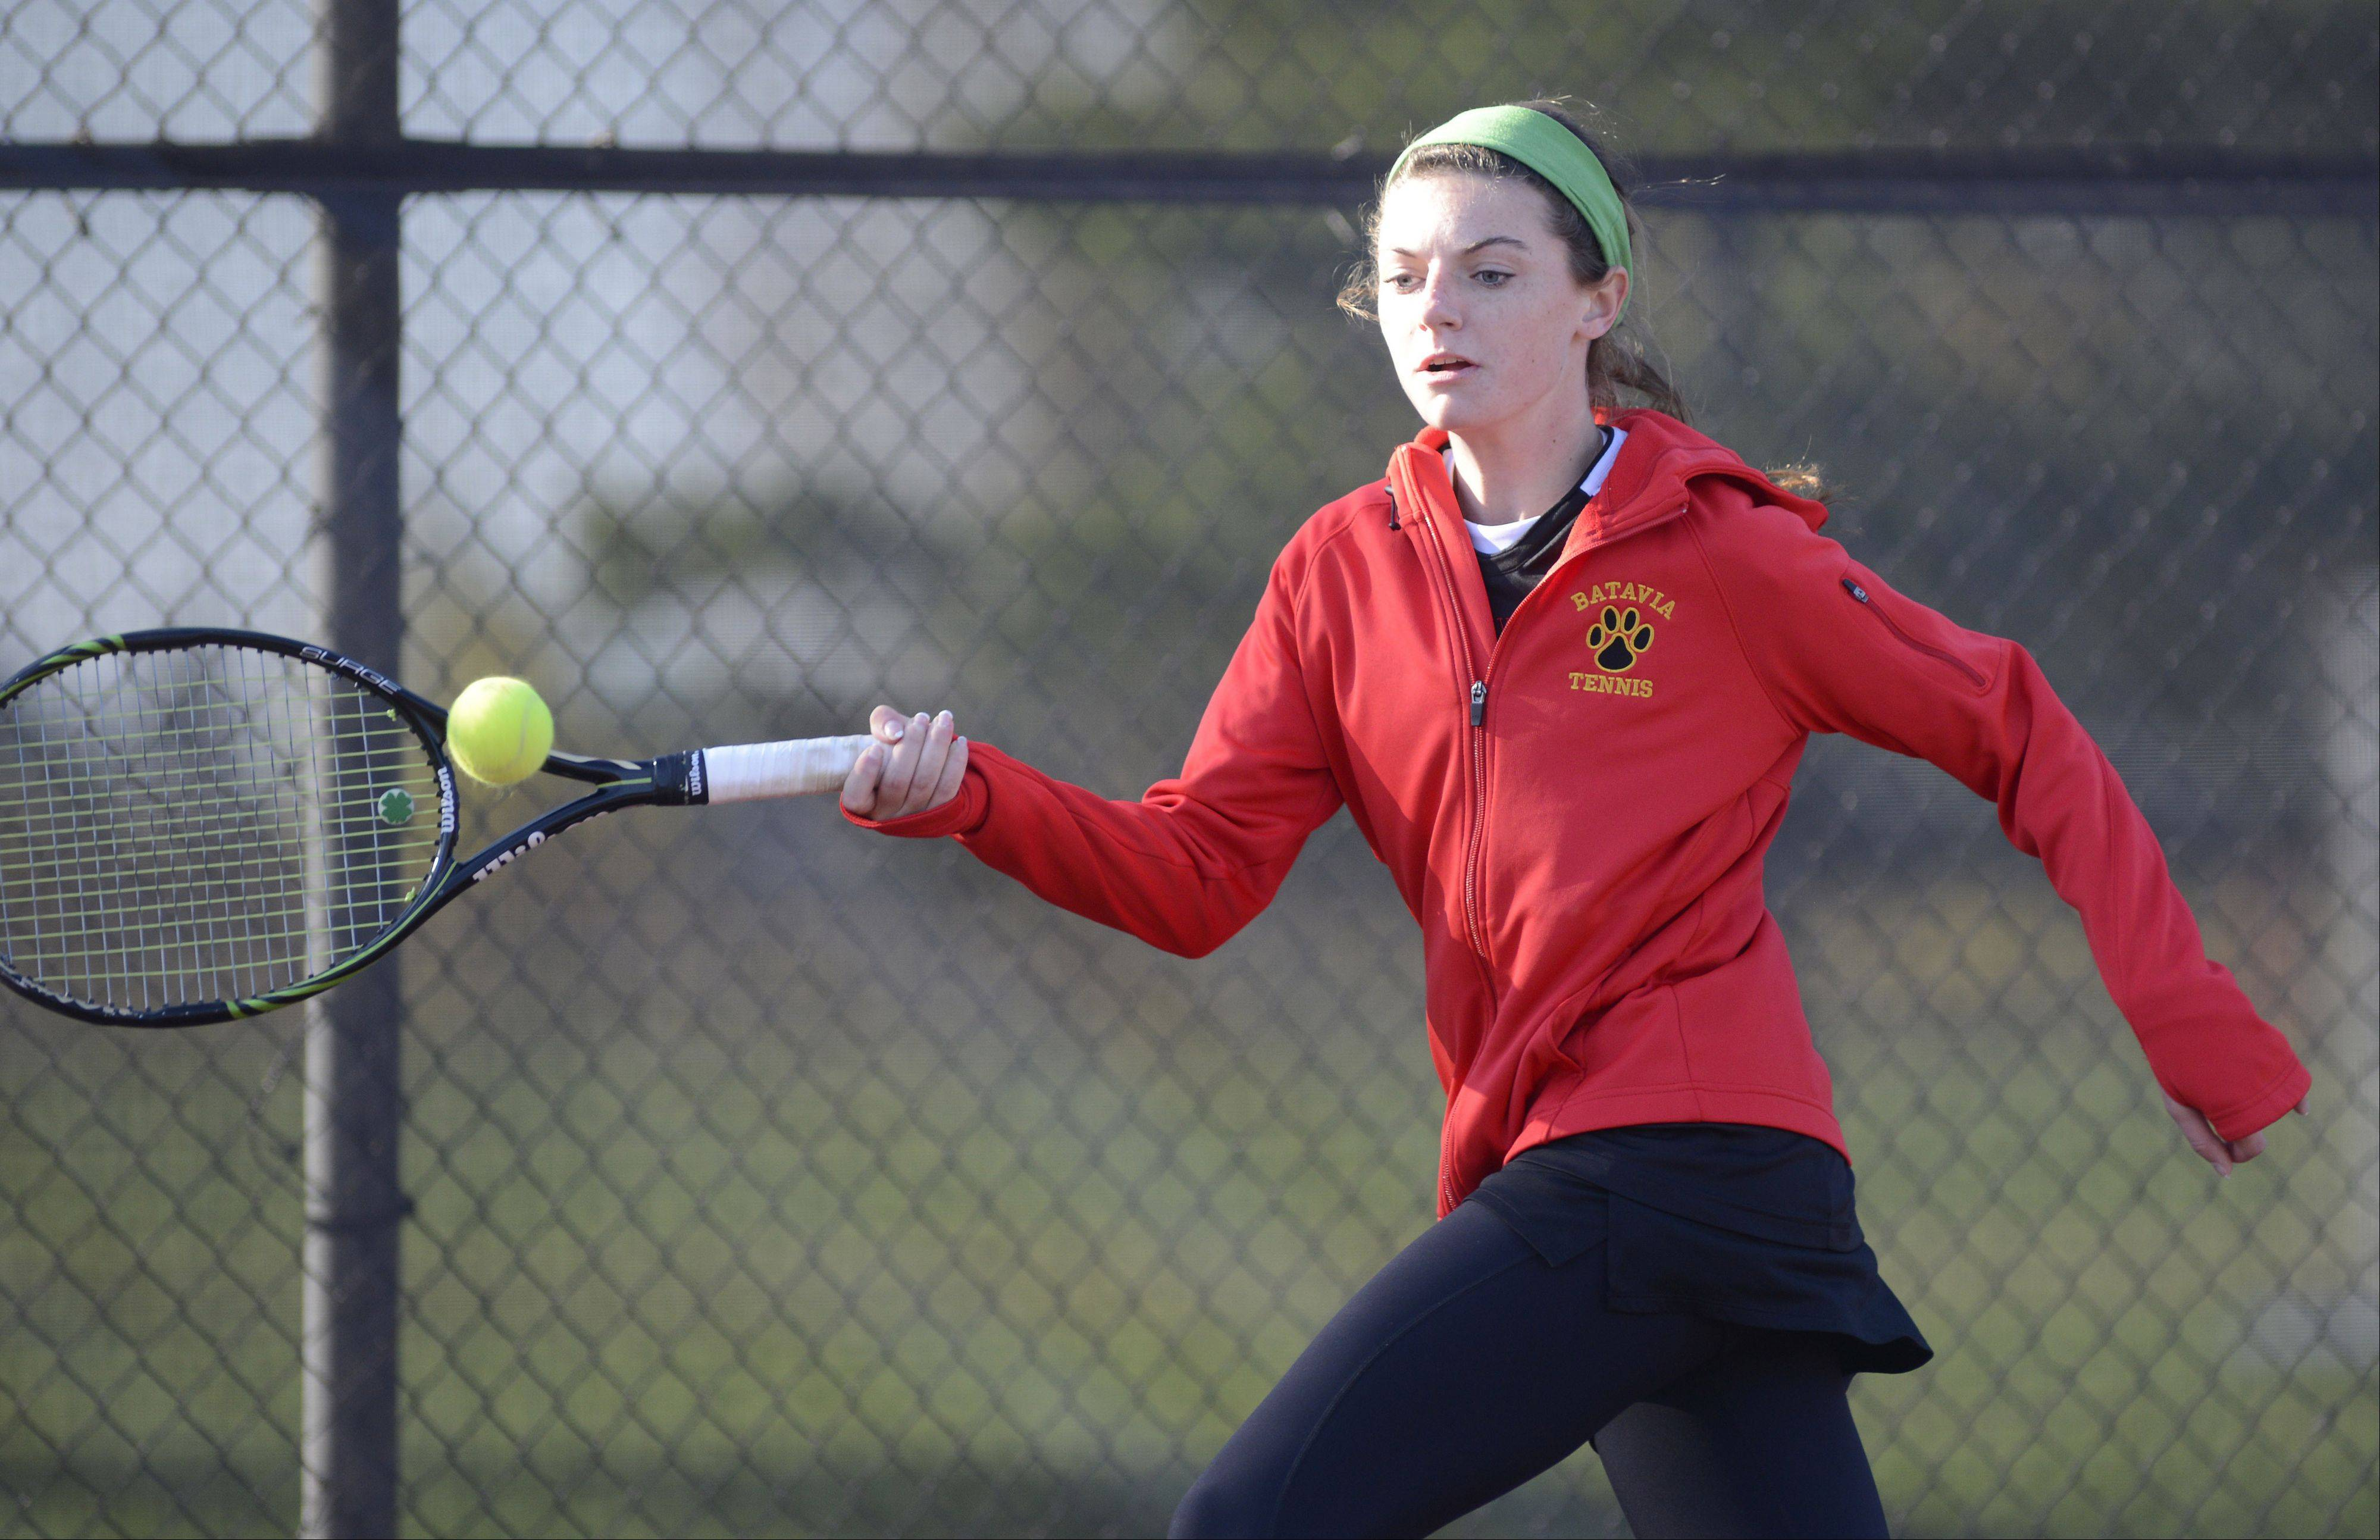 Batavia's Nora McClure returns a hit from St. Charles East's Jaci Spoerl in the singles match at the sectional on Saturday, October 19.